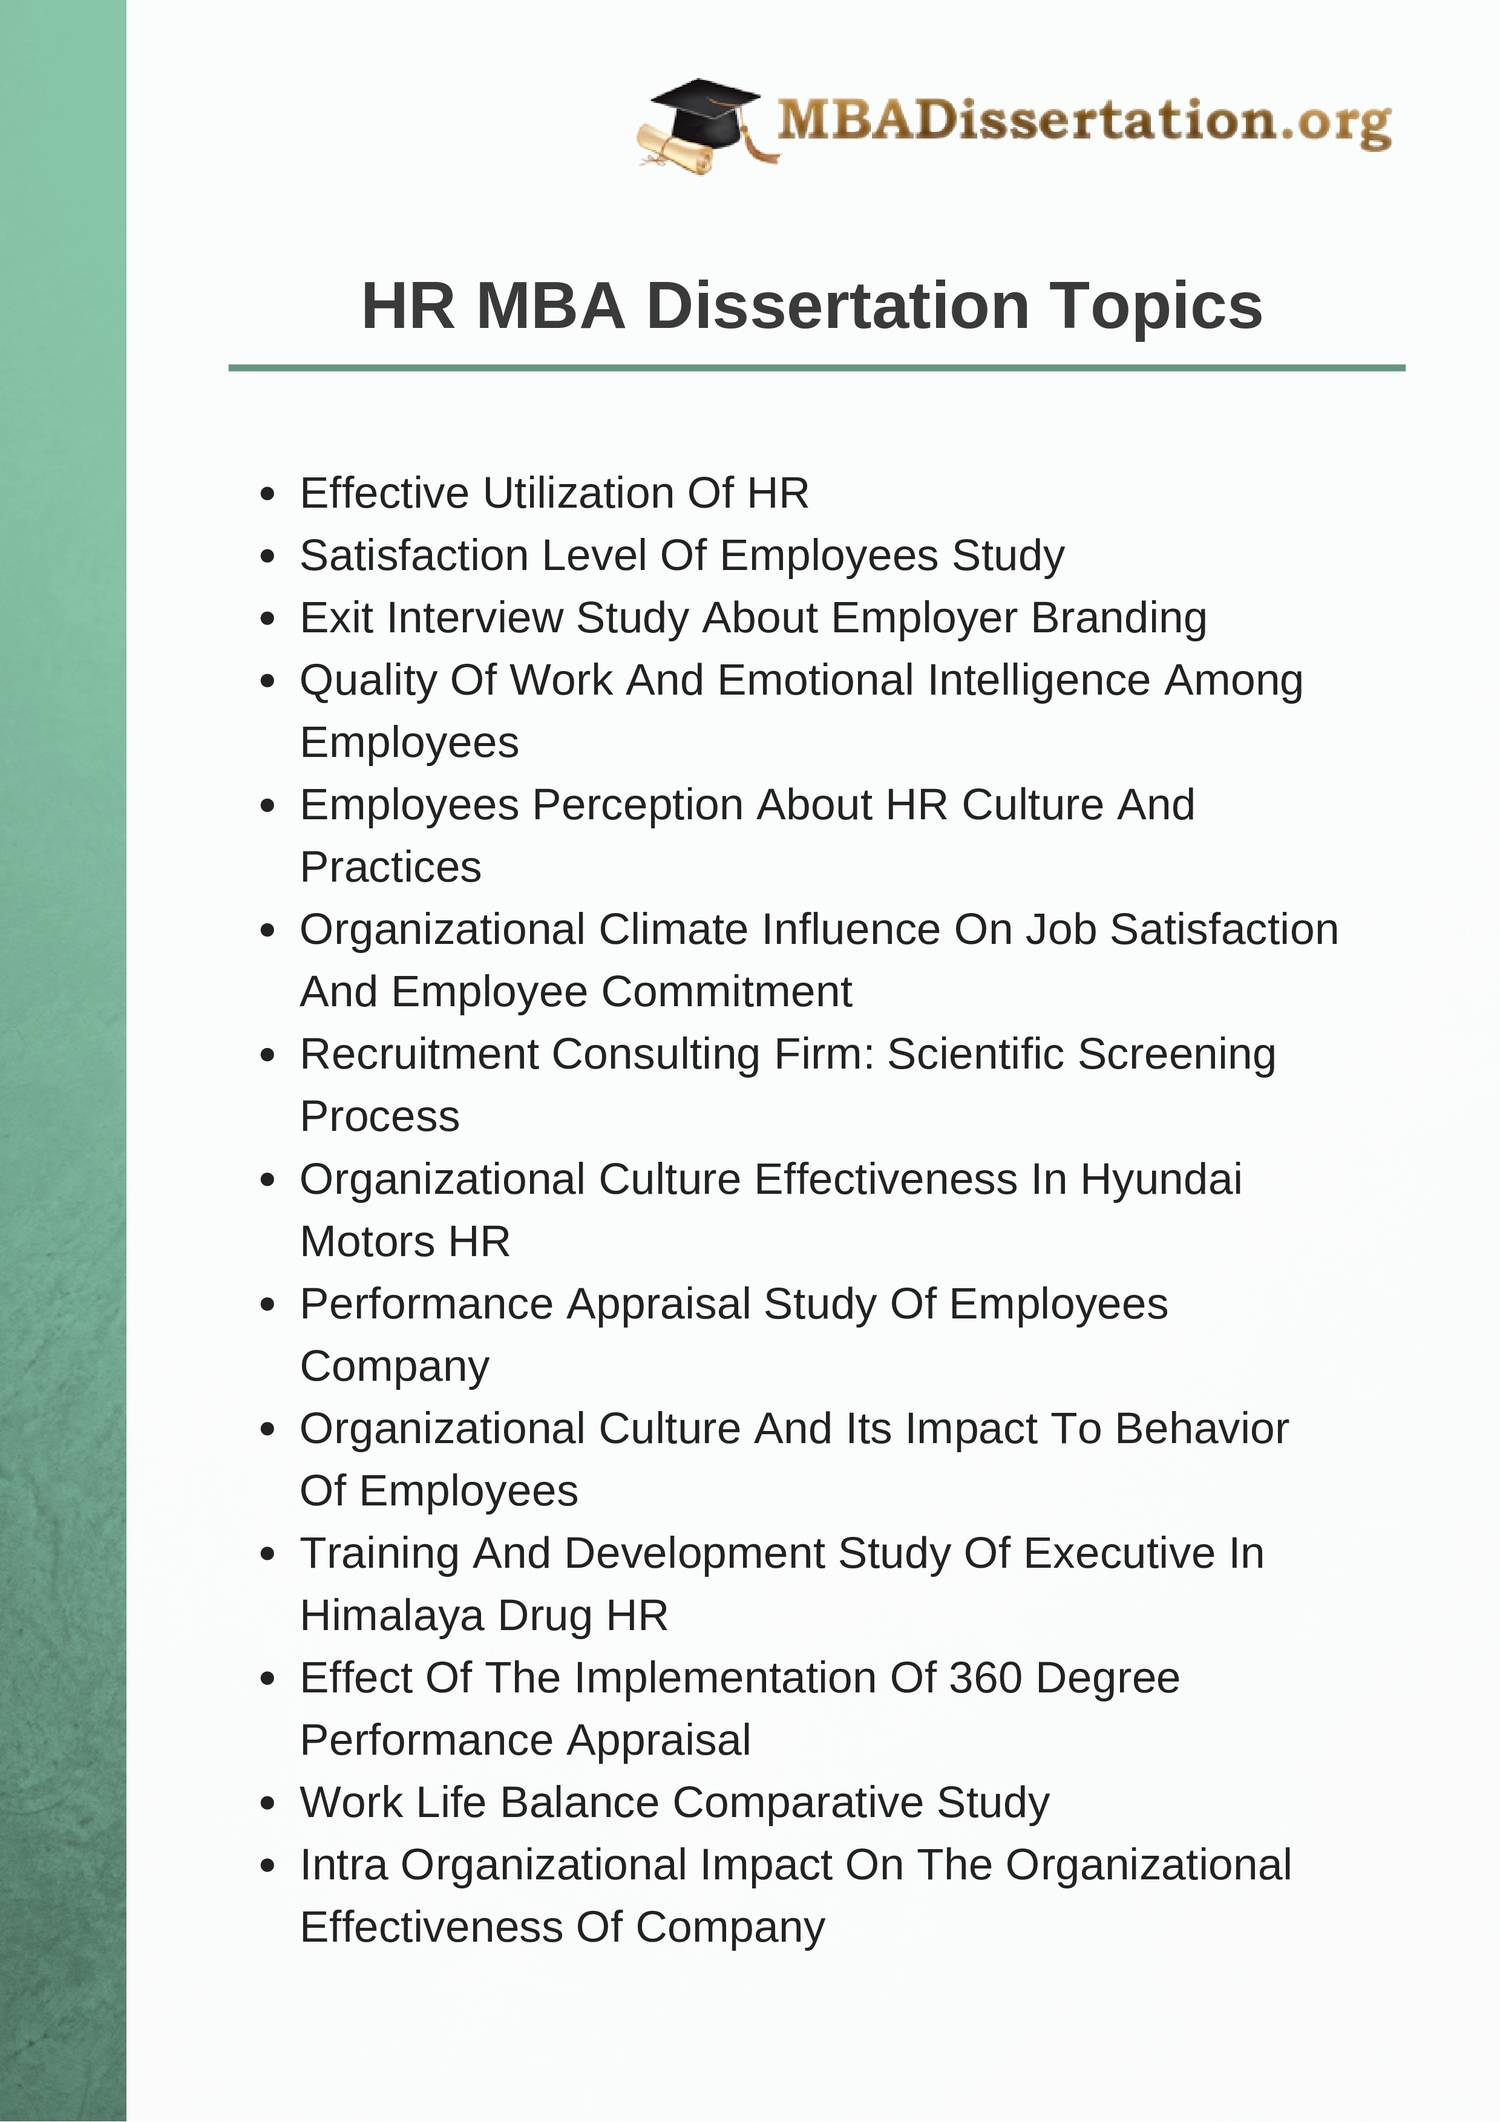 mba dissertation hrm Business & management dissertation topics ~ writing a business dissertation, here we have collected hundreds of topics need custom topic, get 3 topics free.